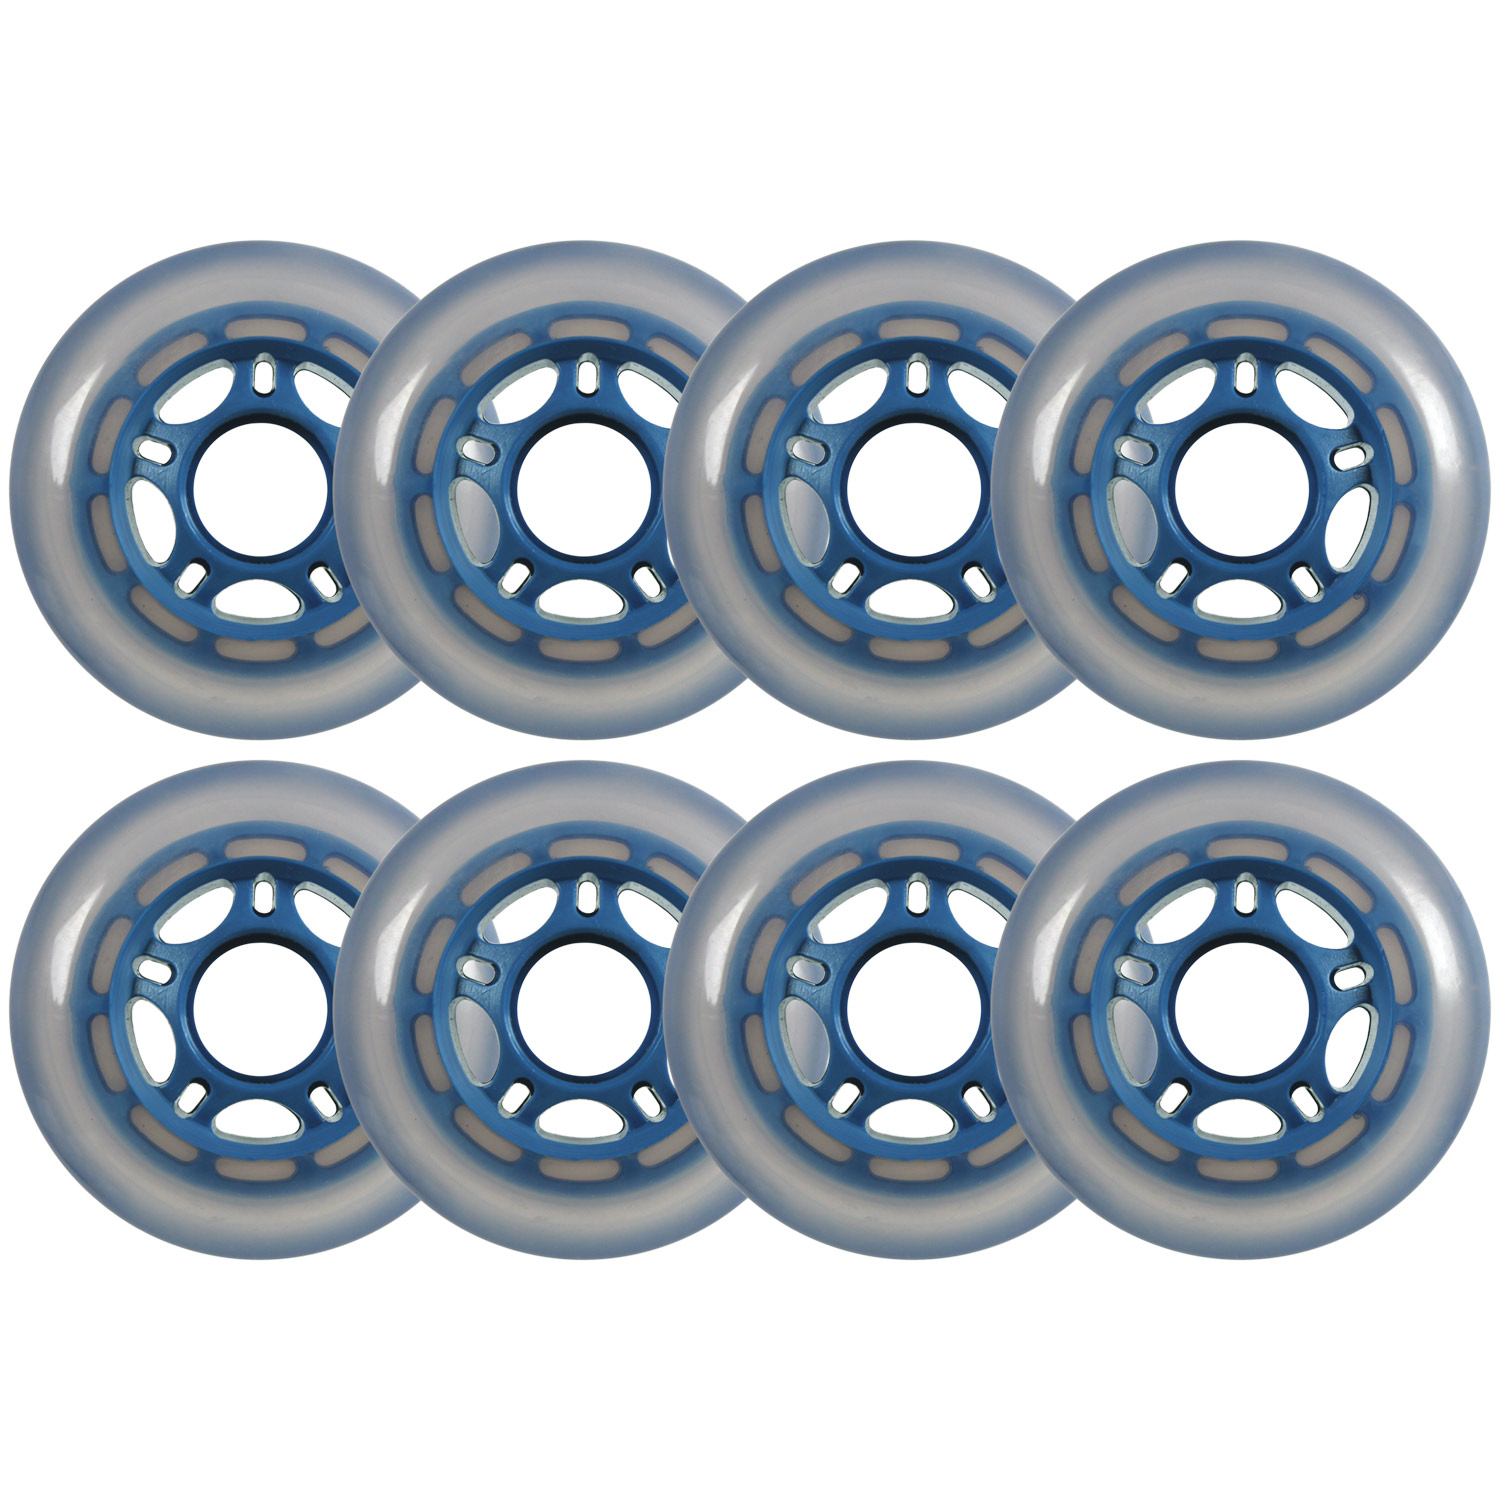 Choice Inline Skate Replacement Wheels Blue/Cloudy 76mm 86A 5-Spoke 8 Pack